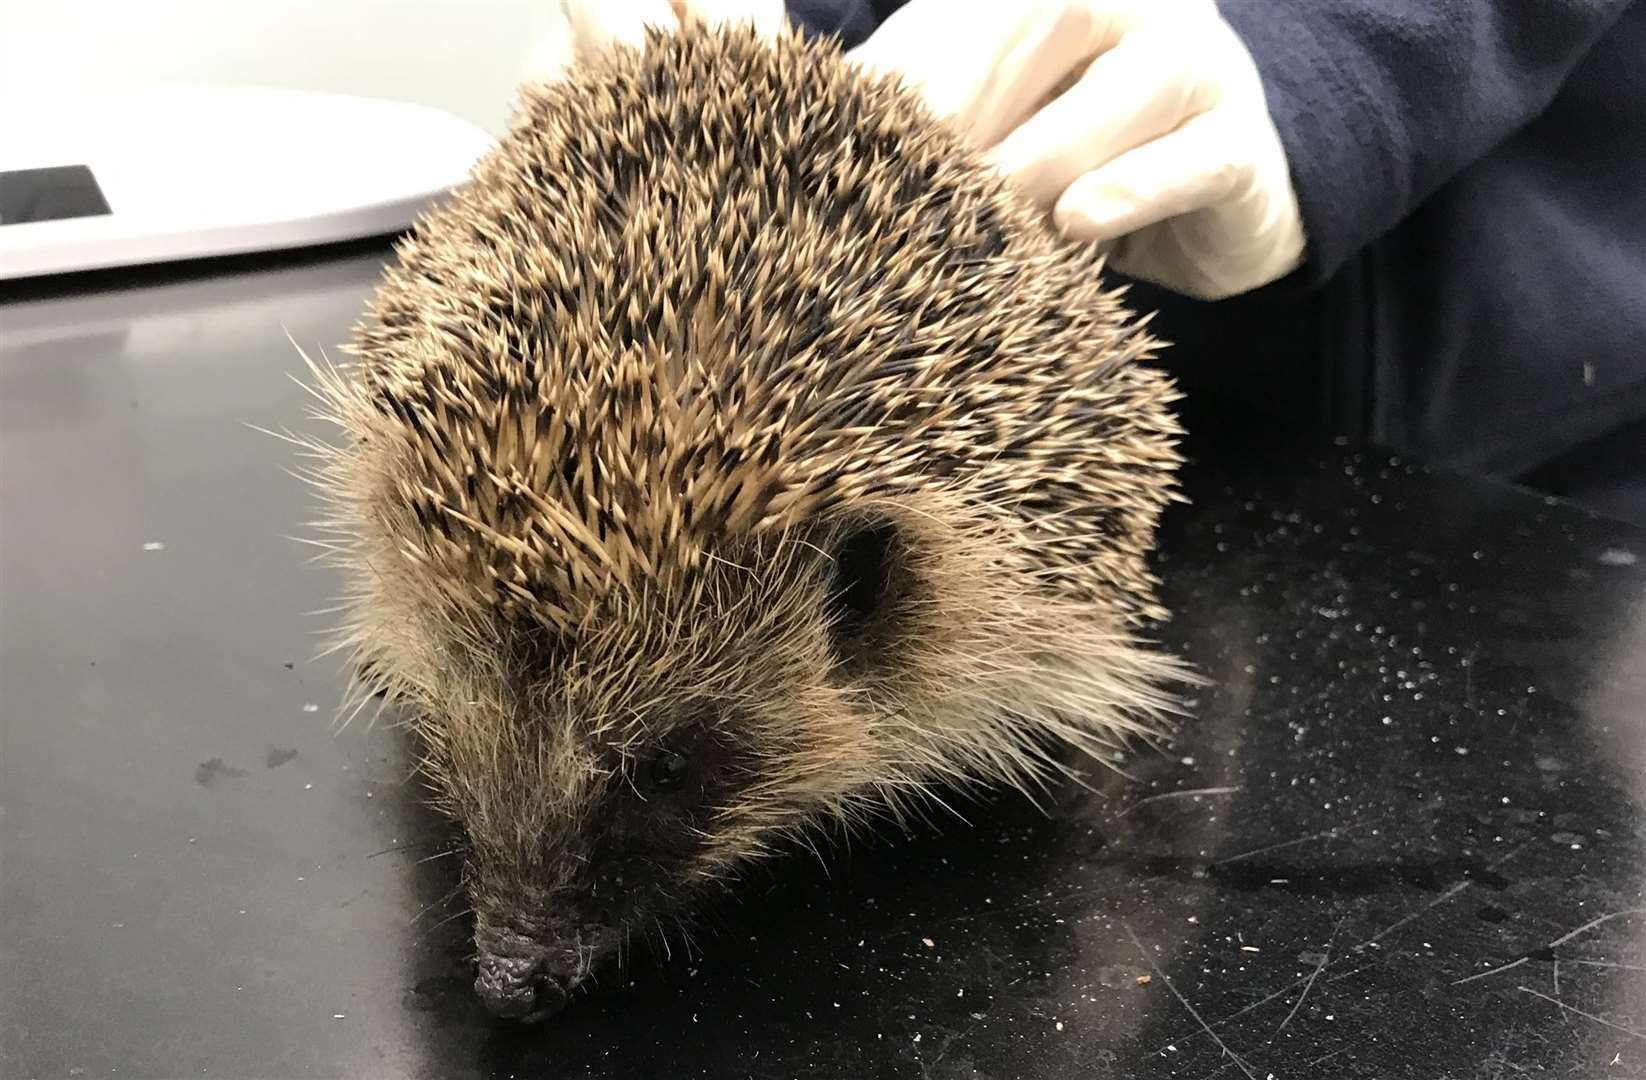 The hedgehog was rescued by a member of the public (5323232)